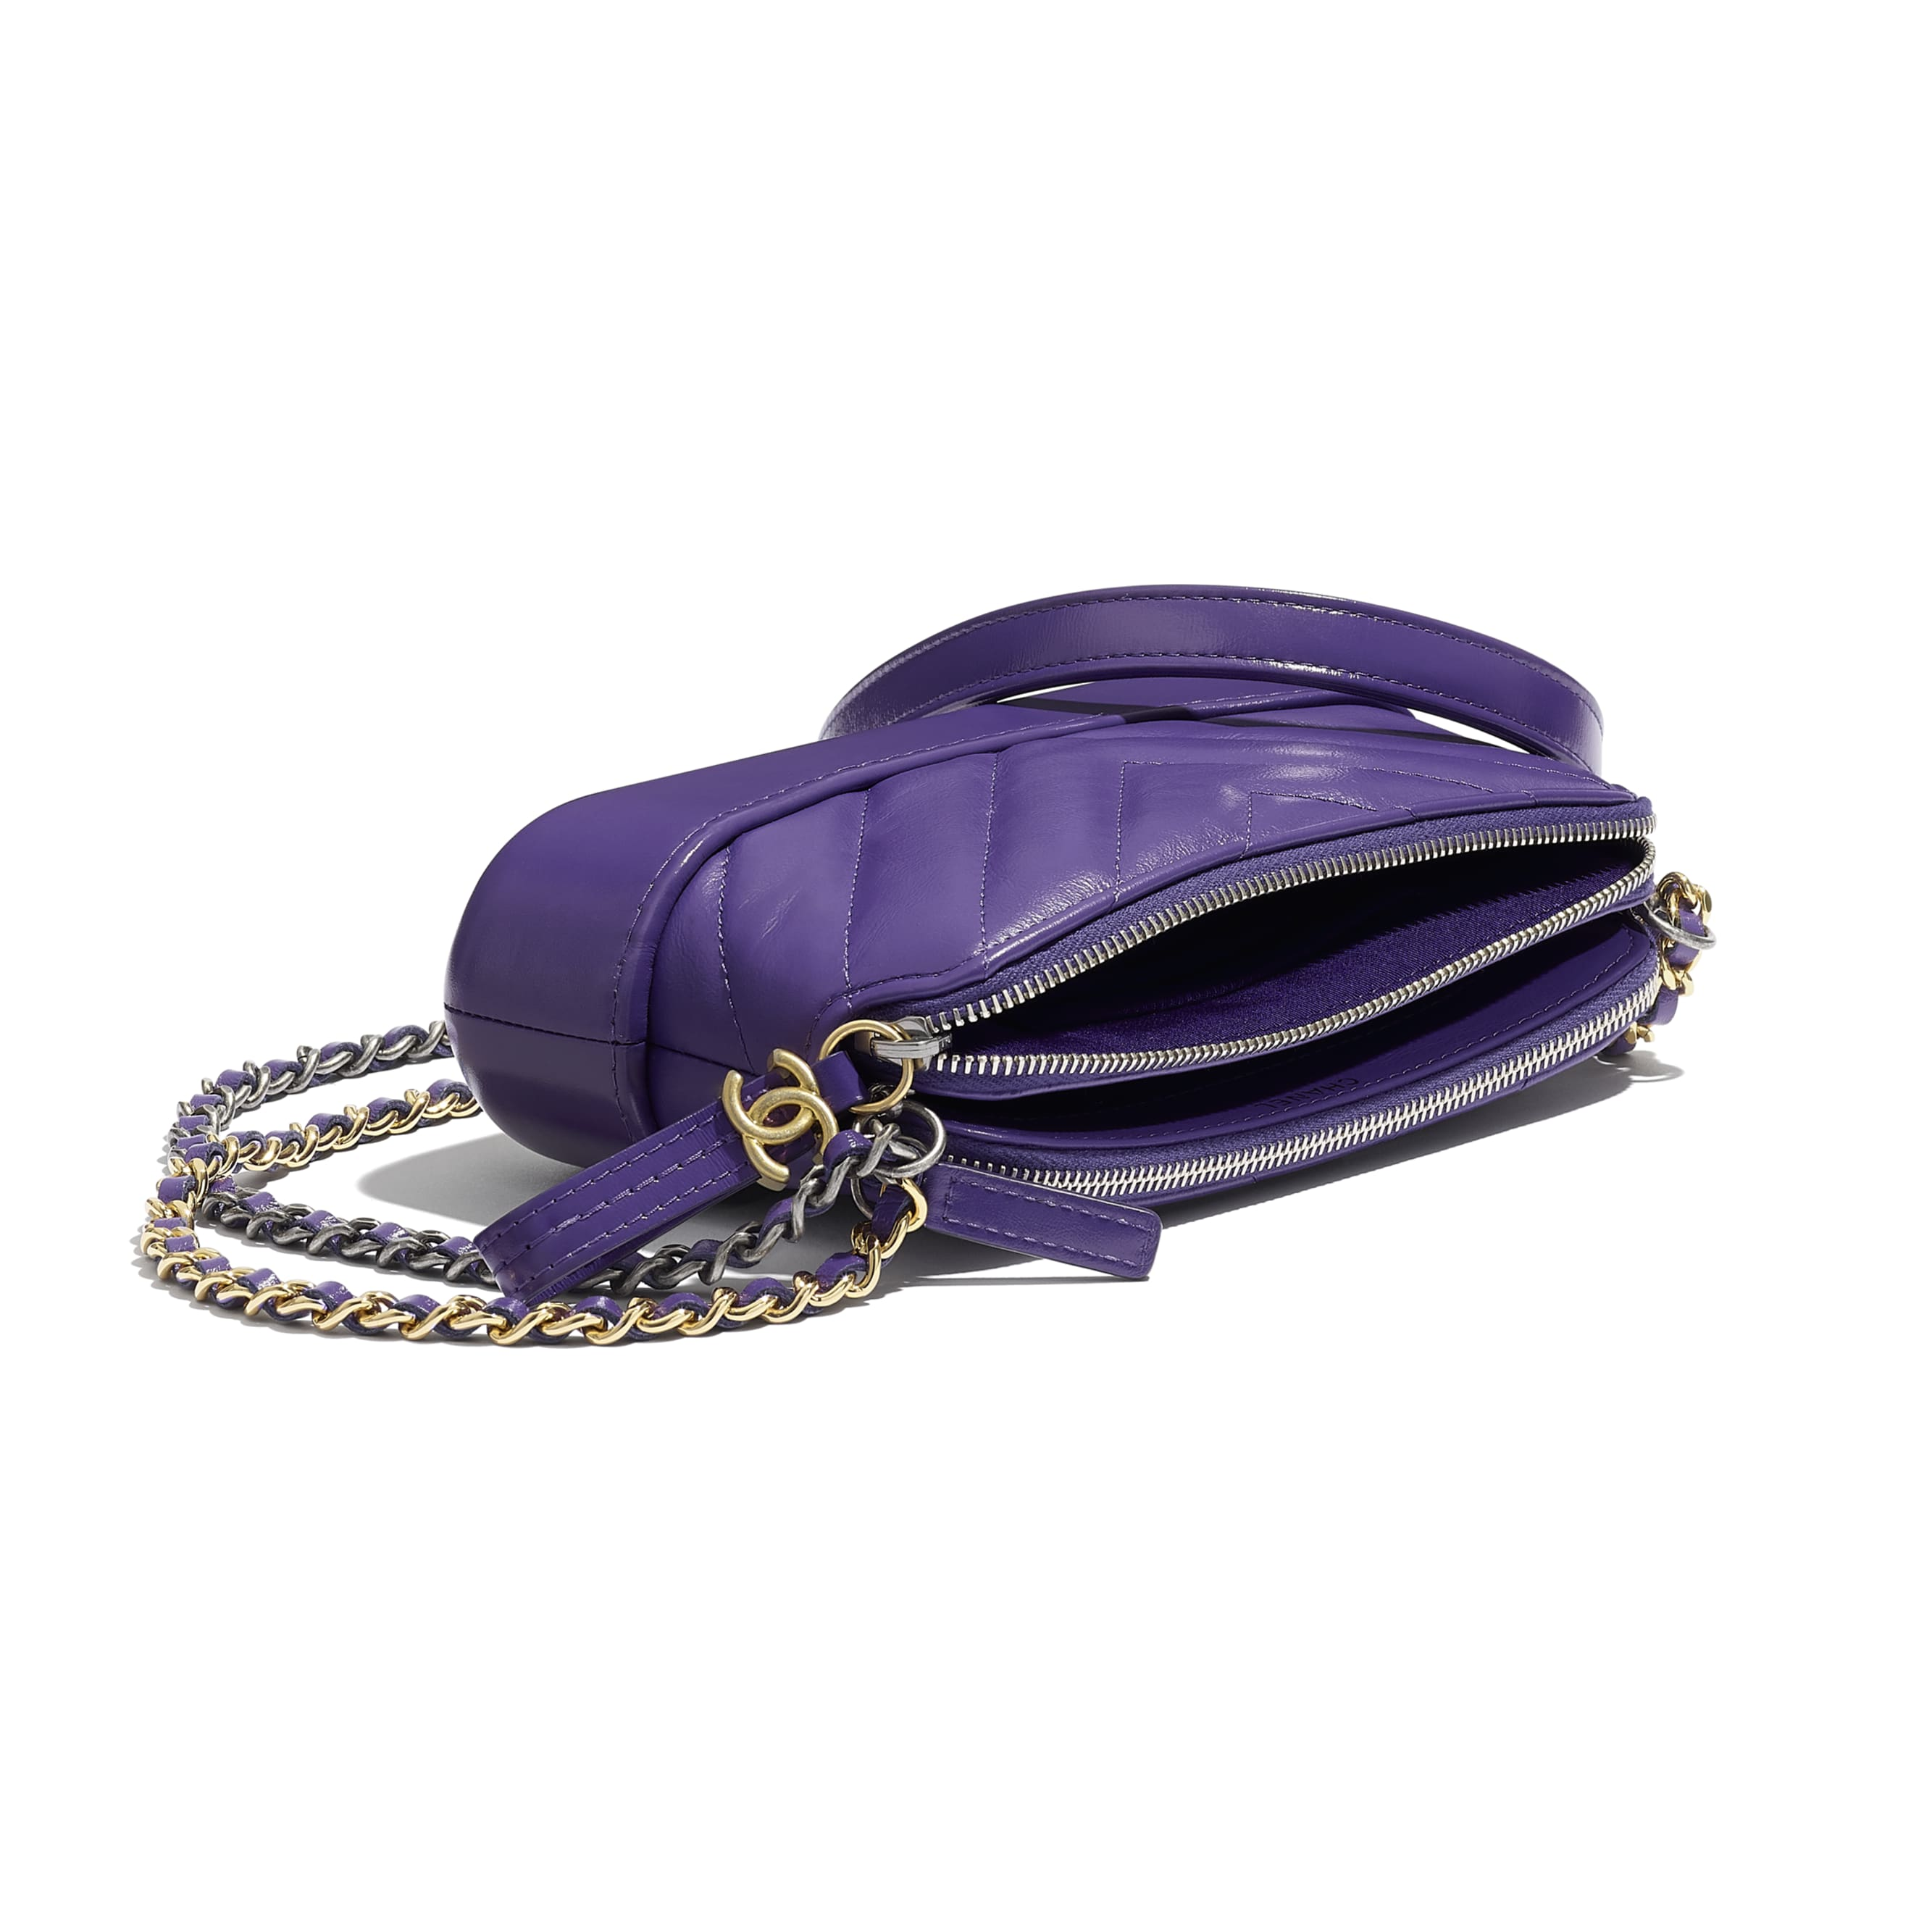 Clutch With Chain - Purple - Aged Calfskin, Smooth Calfskin, Gold-Tone & Silver-Tone Metal - Extra view - see standard sized version